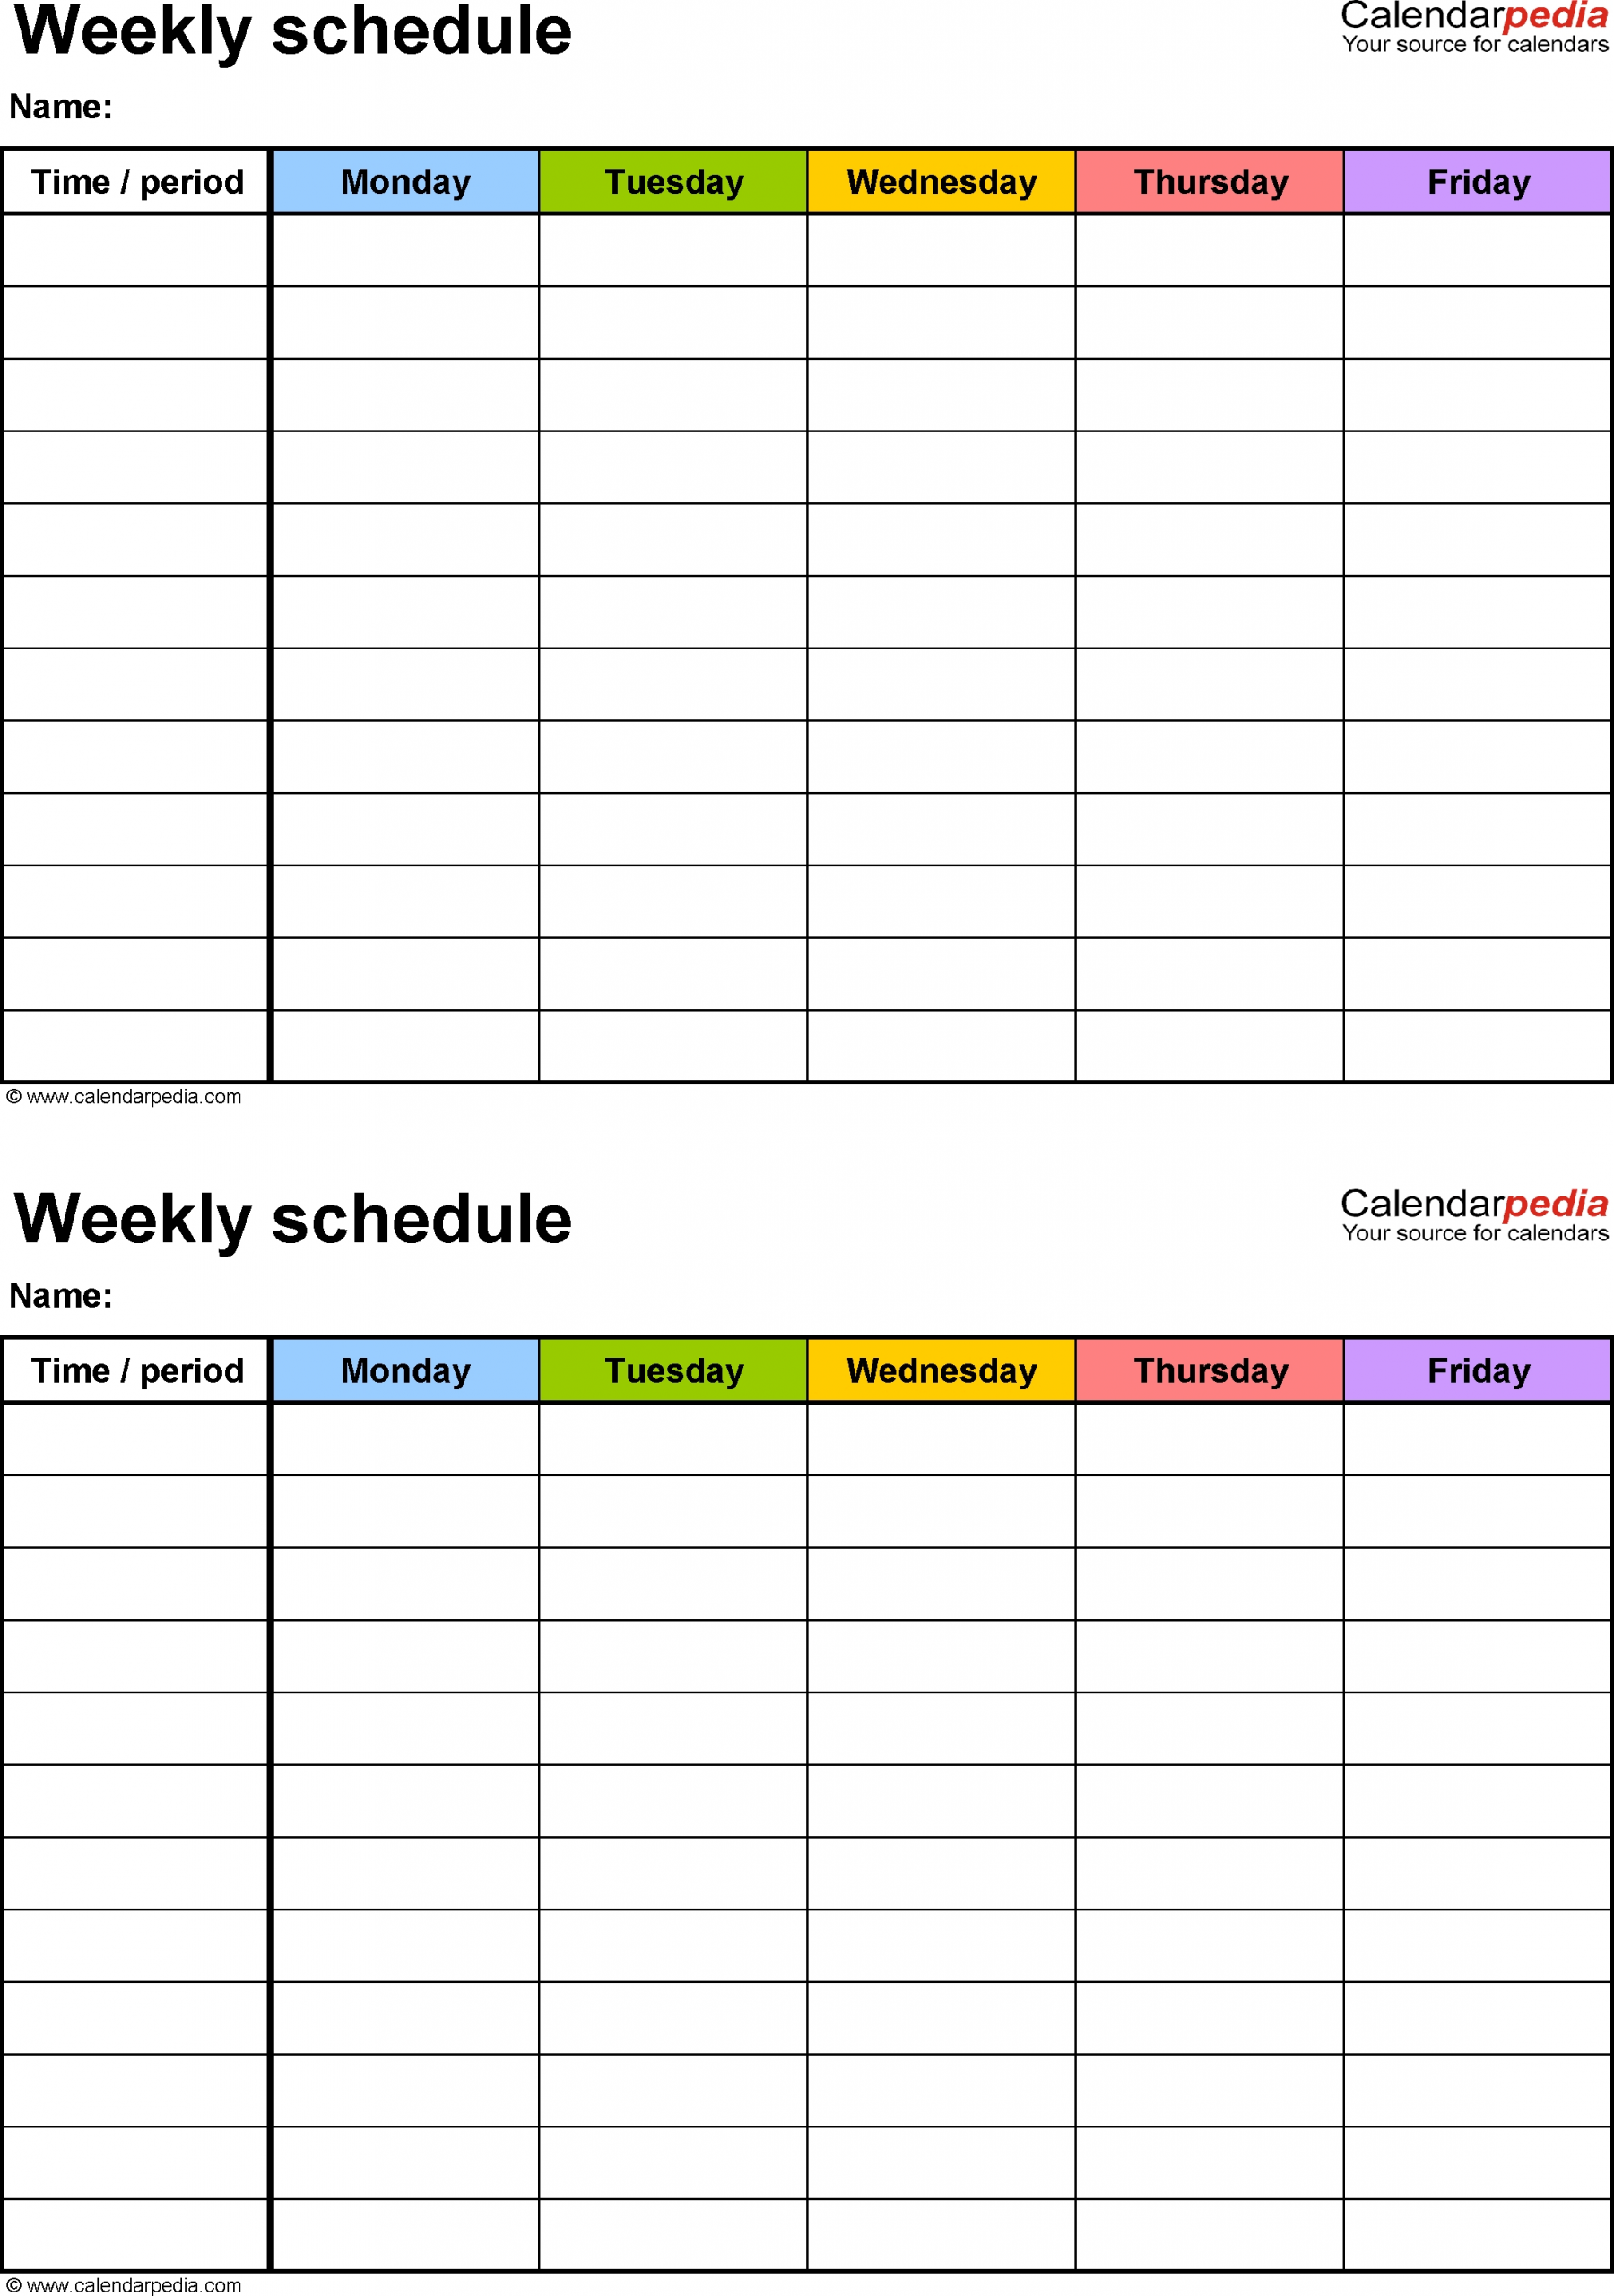 Monday Through Friday Scheule Pdf – Template Calendar Design Employee Monday To Sunday Schedule